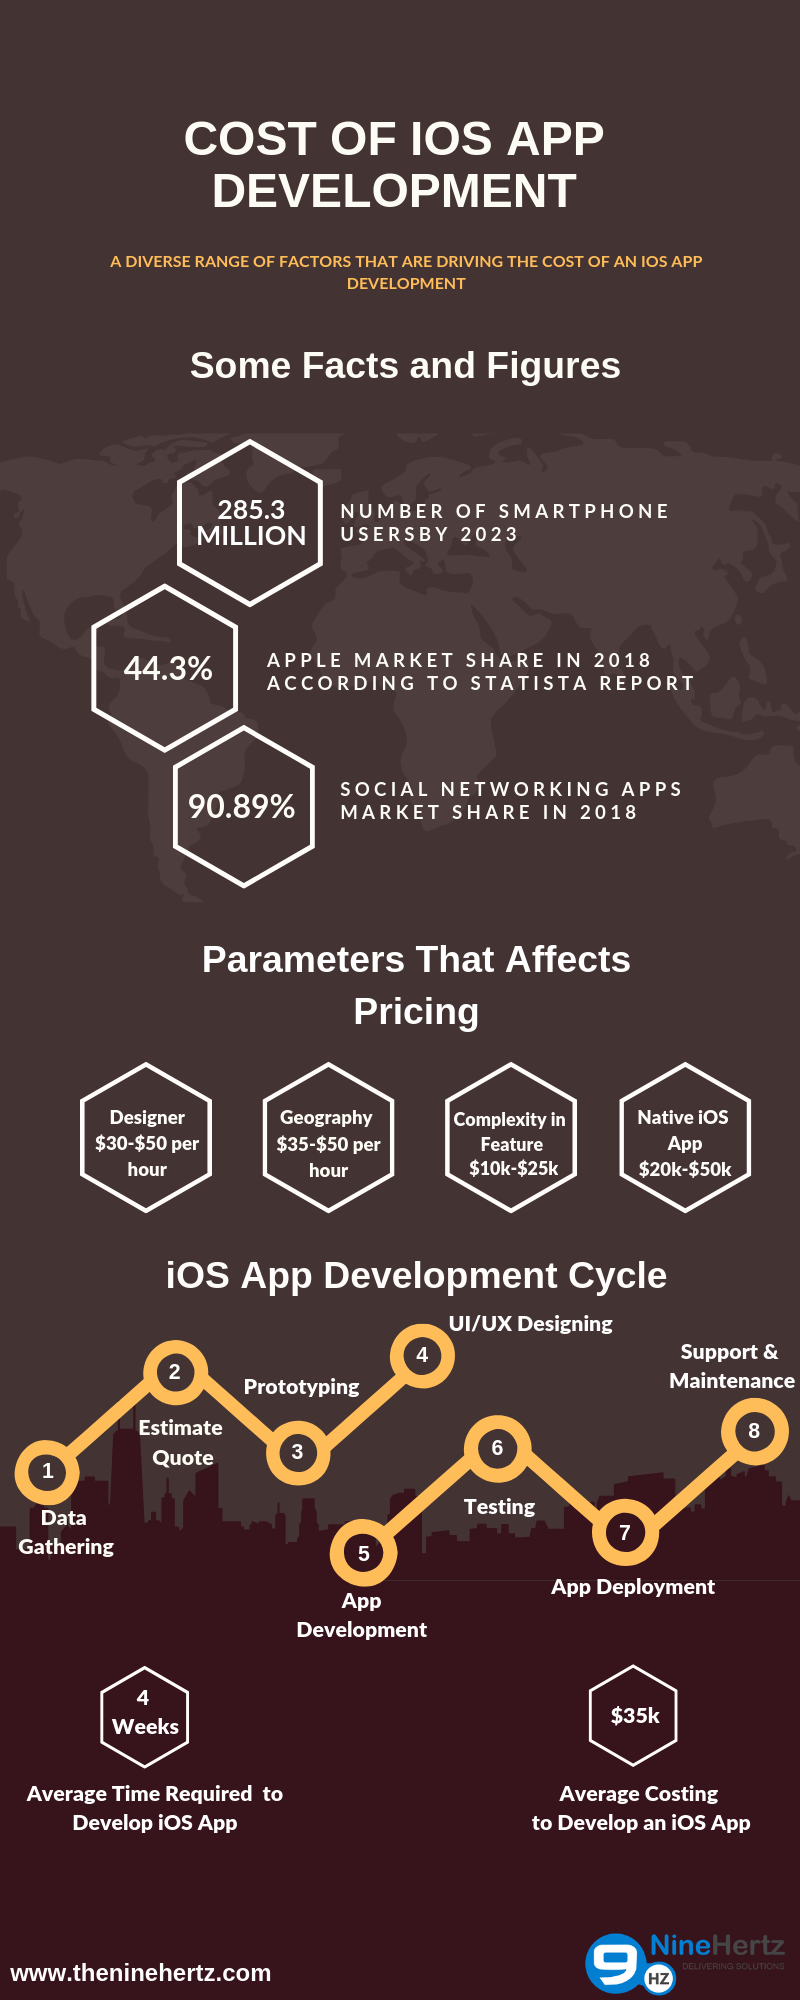 Cost of iOS App Development